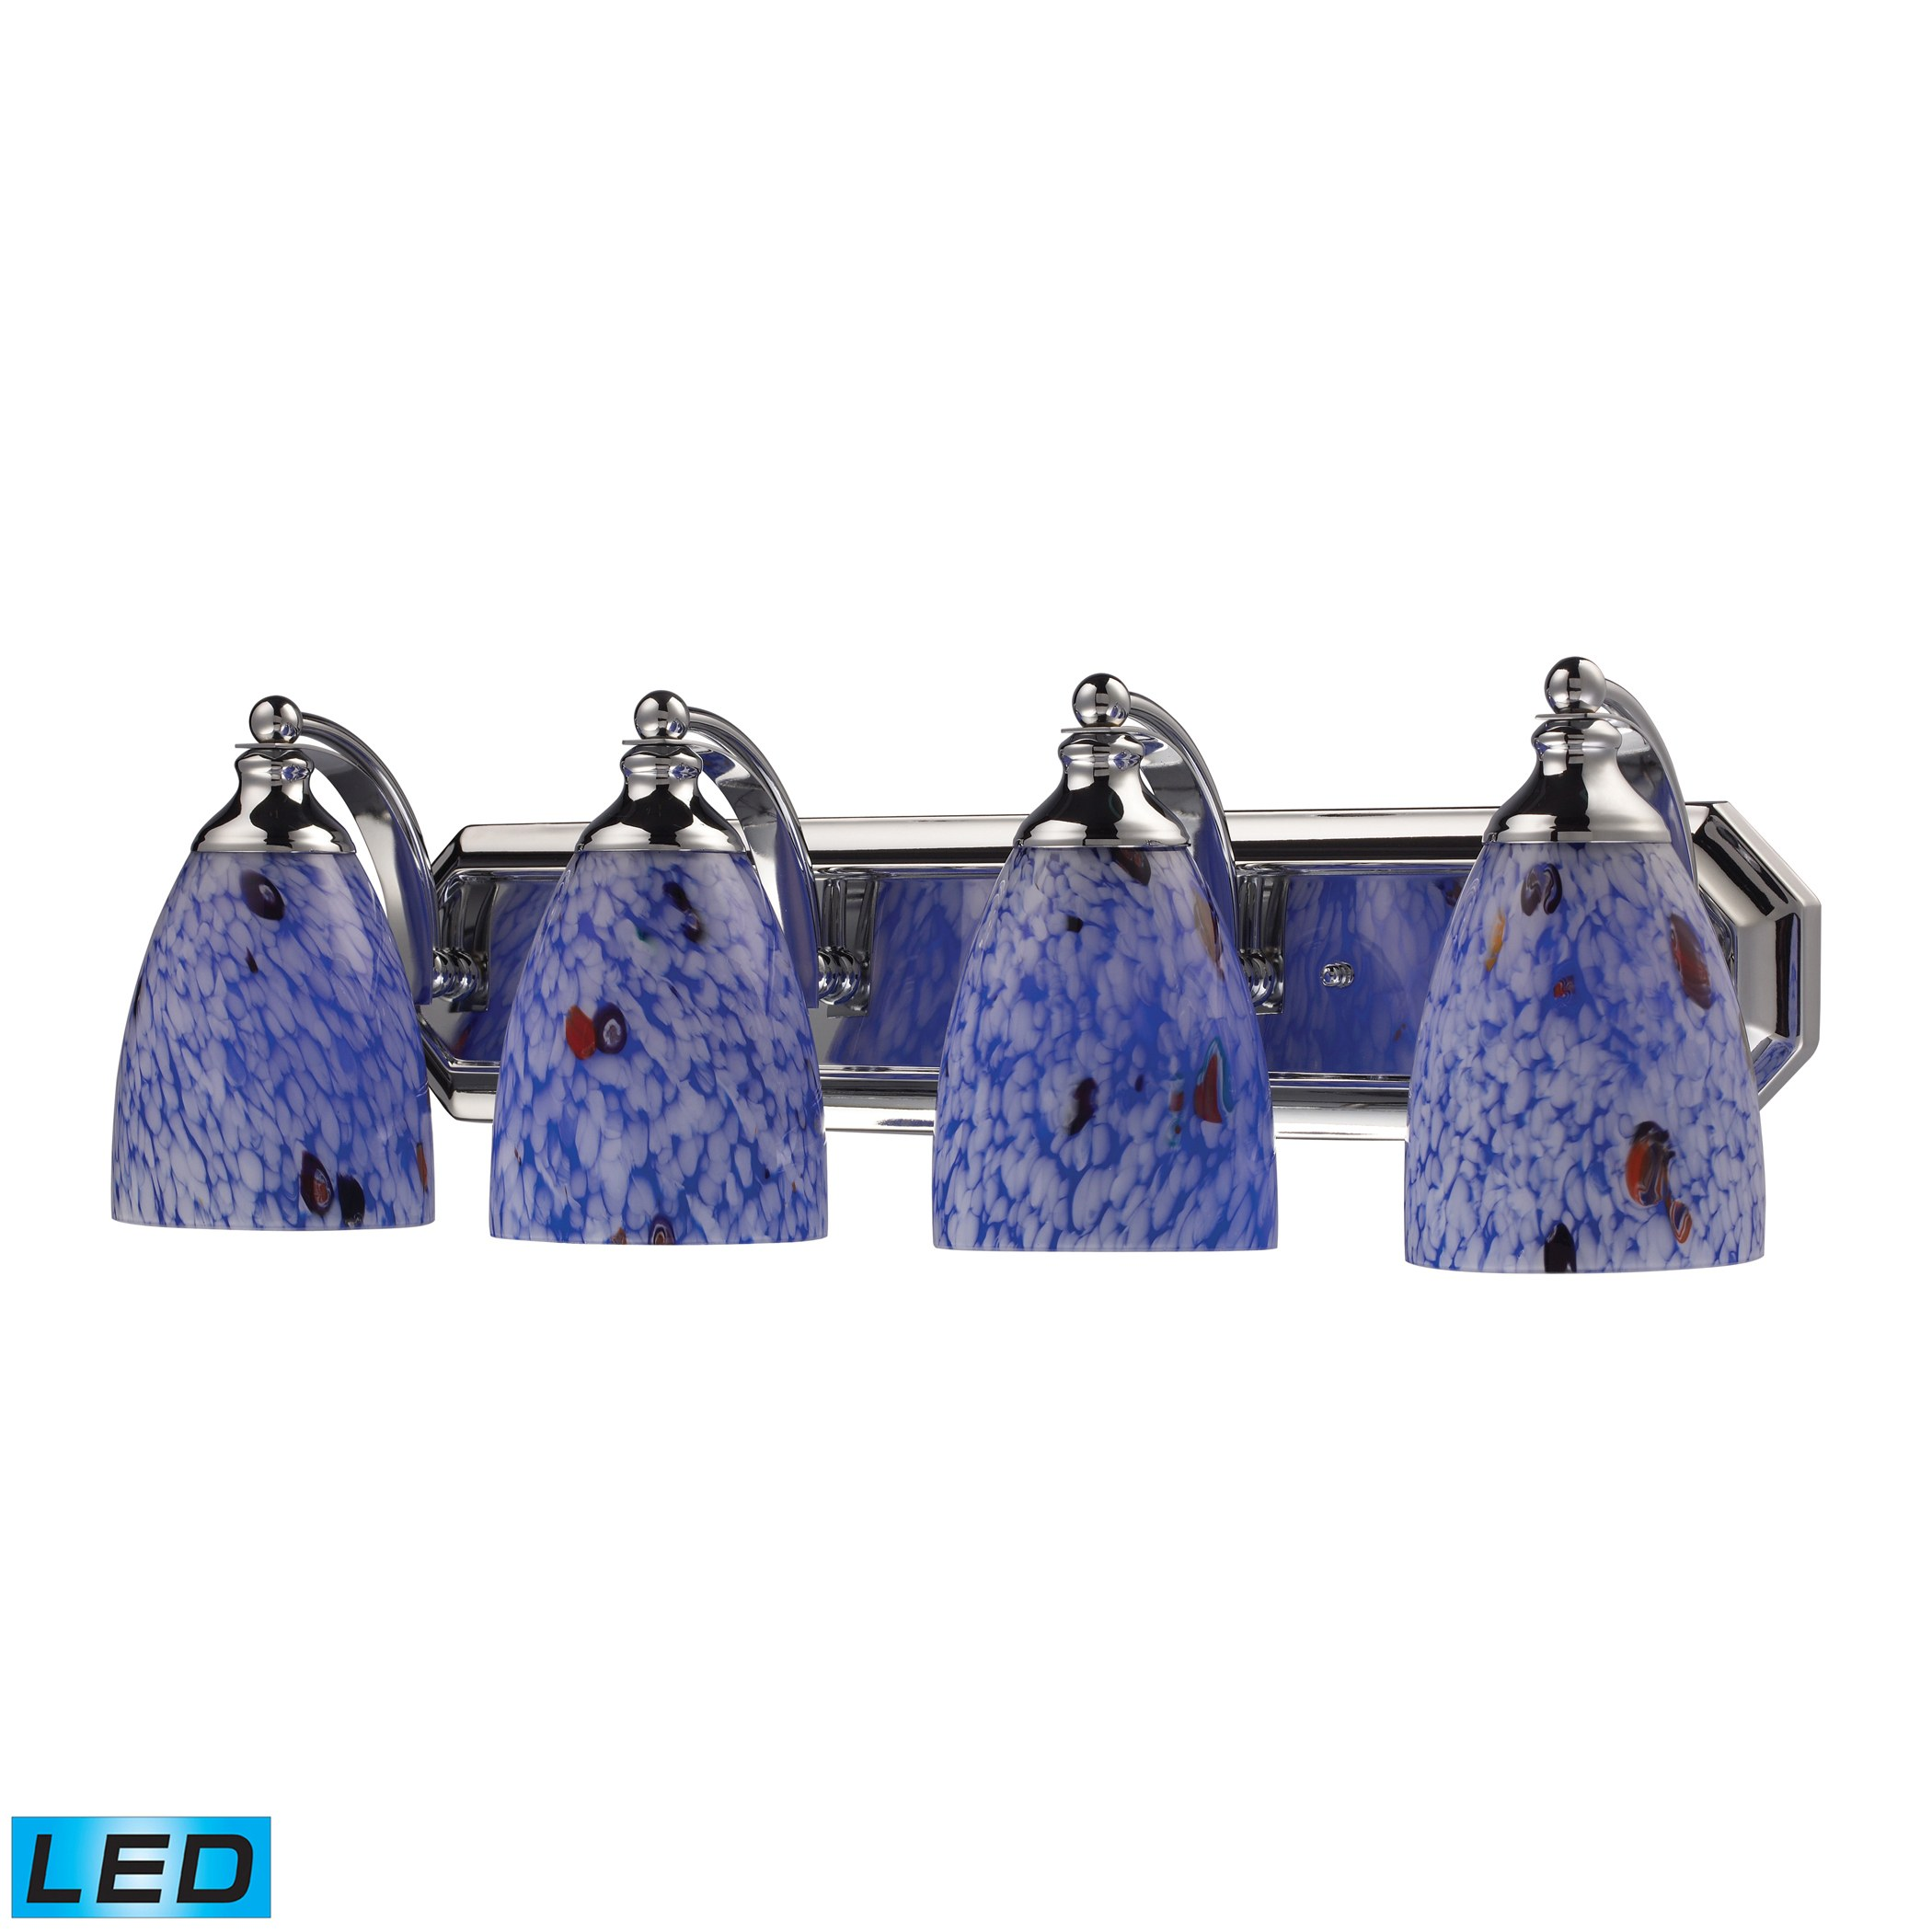 Blue Glass Vanity Light : 4 Light Vanity In Polished Chrome And Starburst Blue Glass by Elk Lighting